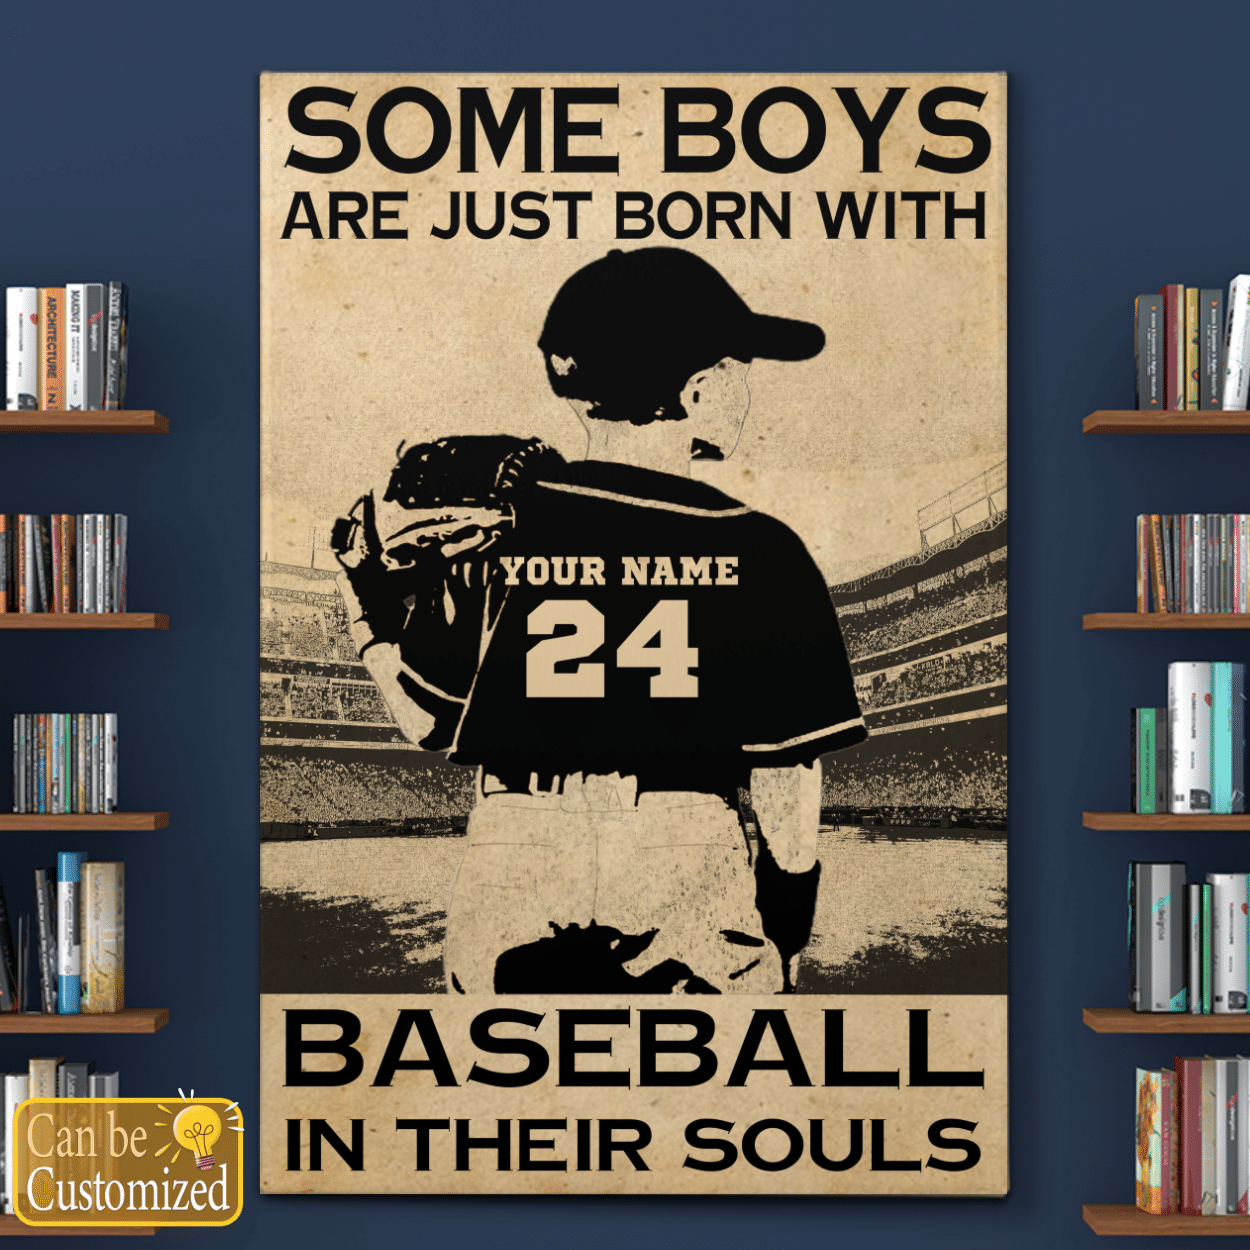 Some boys are just born with baseball in their souls custom name and number canvas